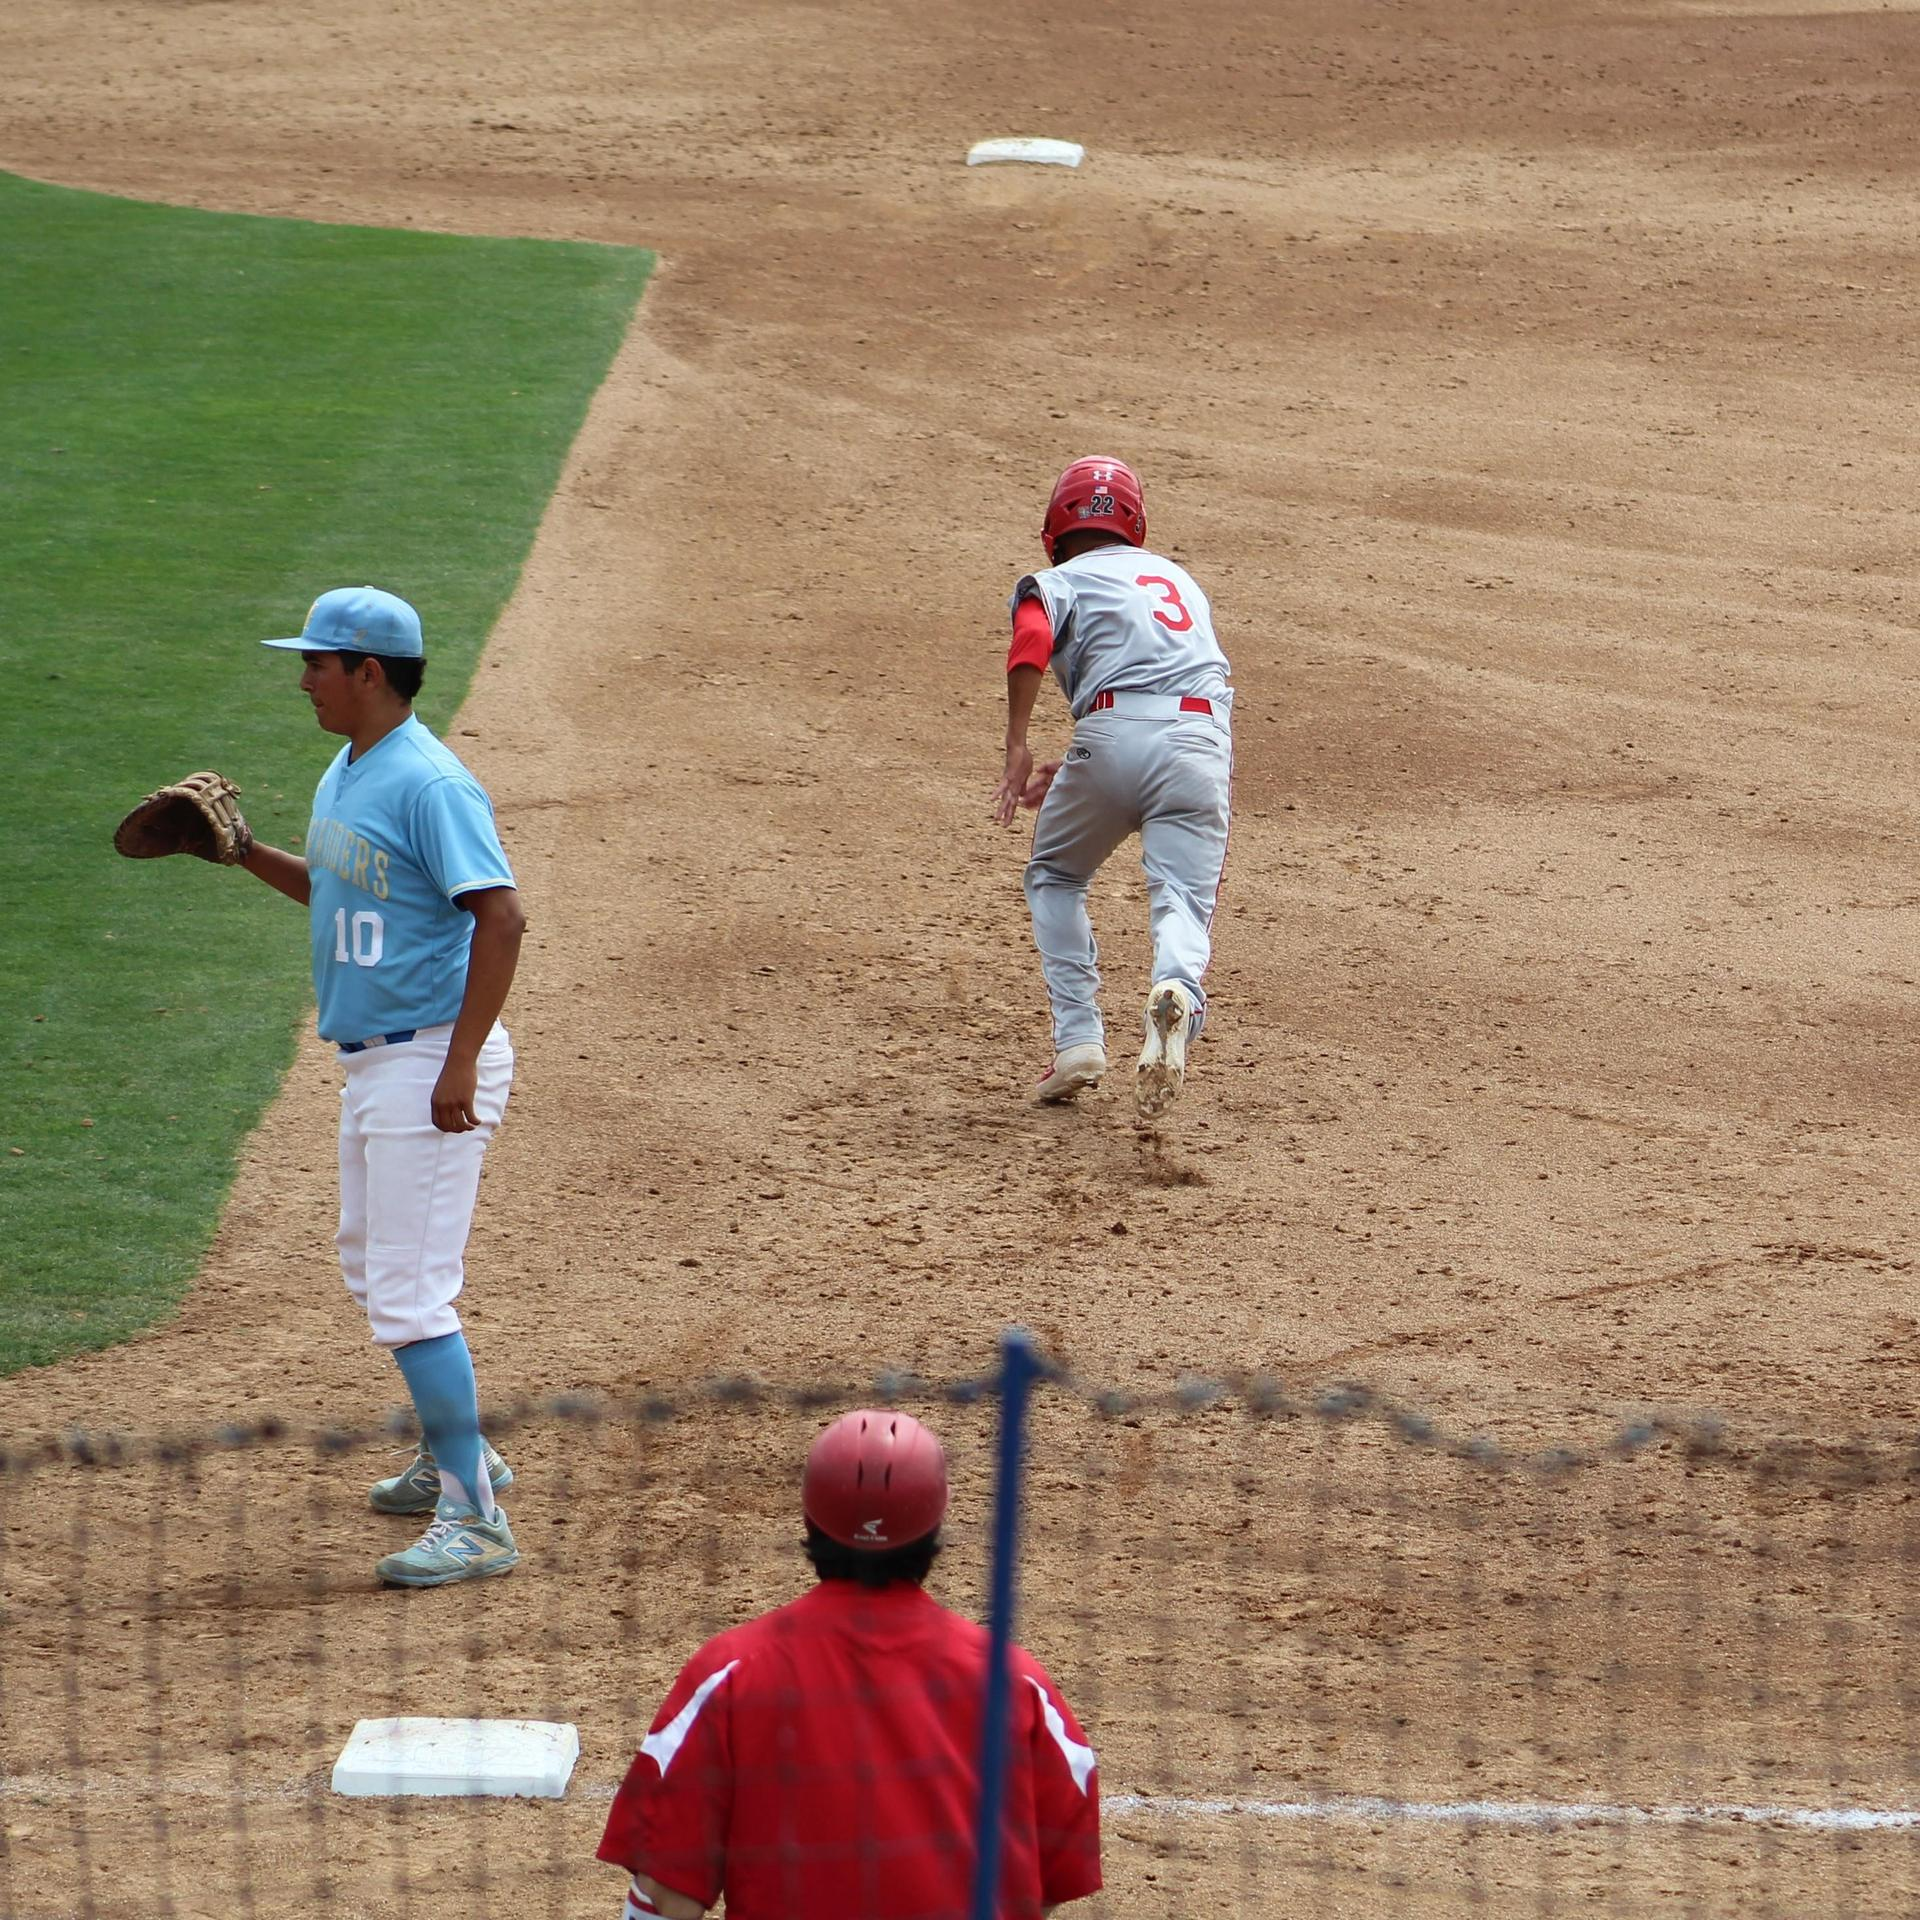 Ramos runs to second